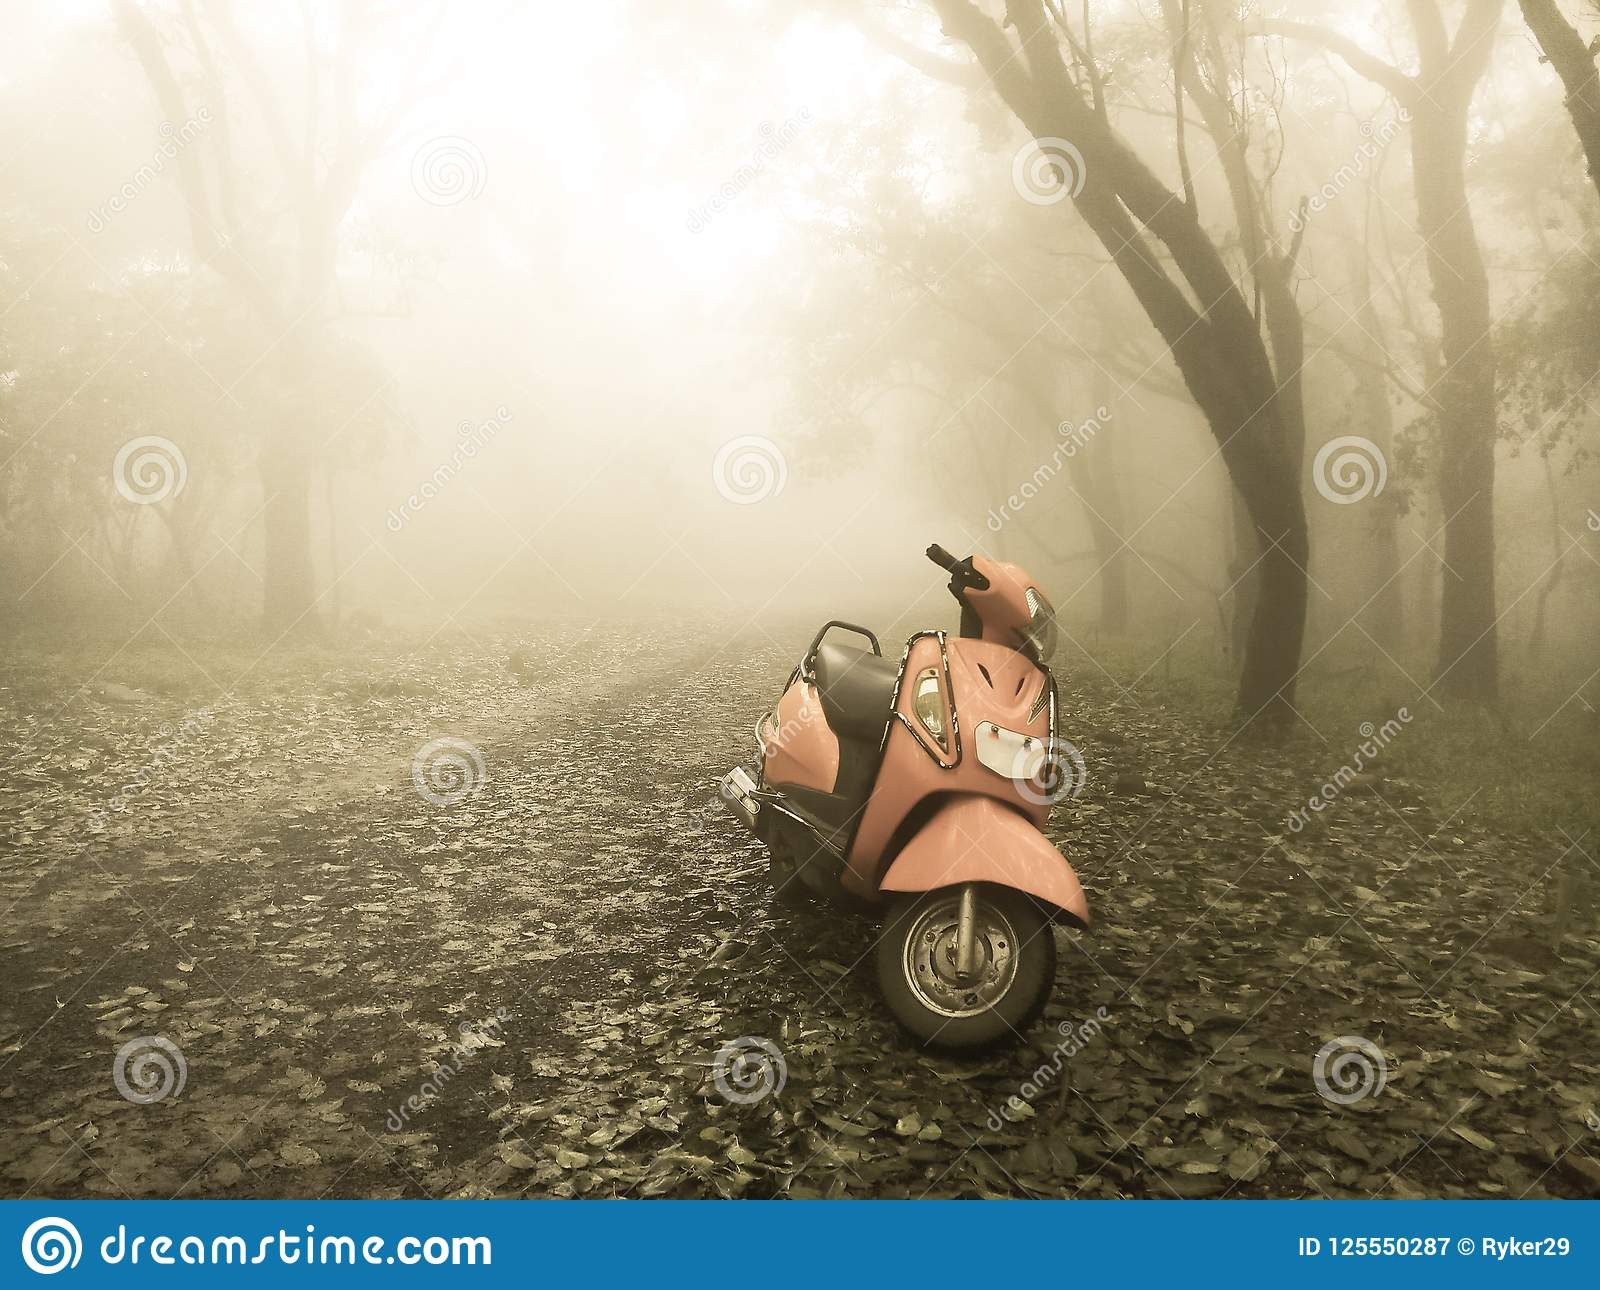 A scooter standing in nature in sepia